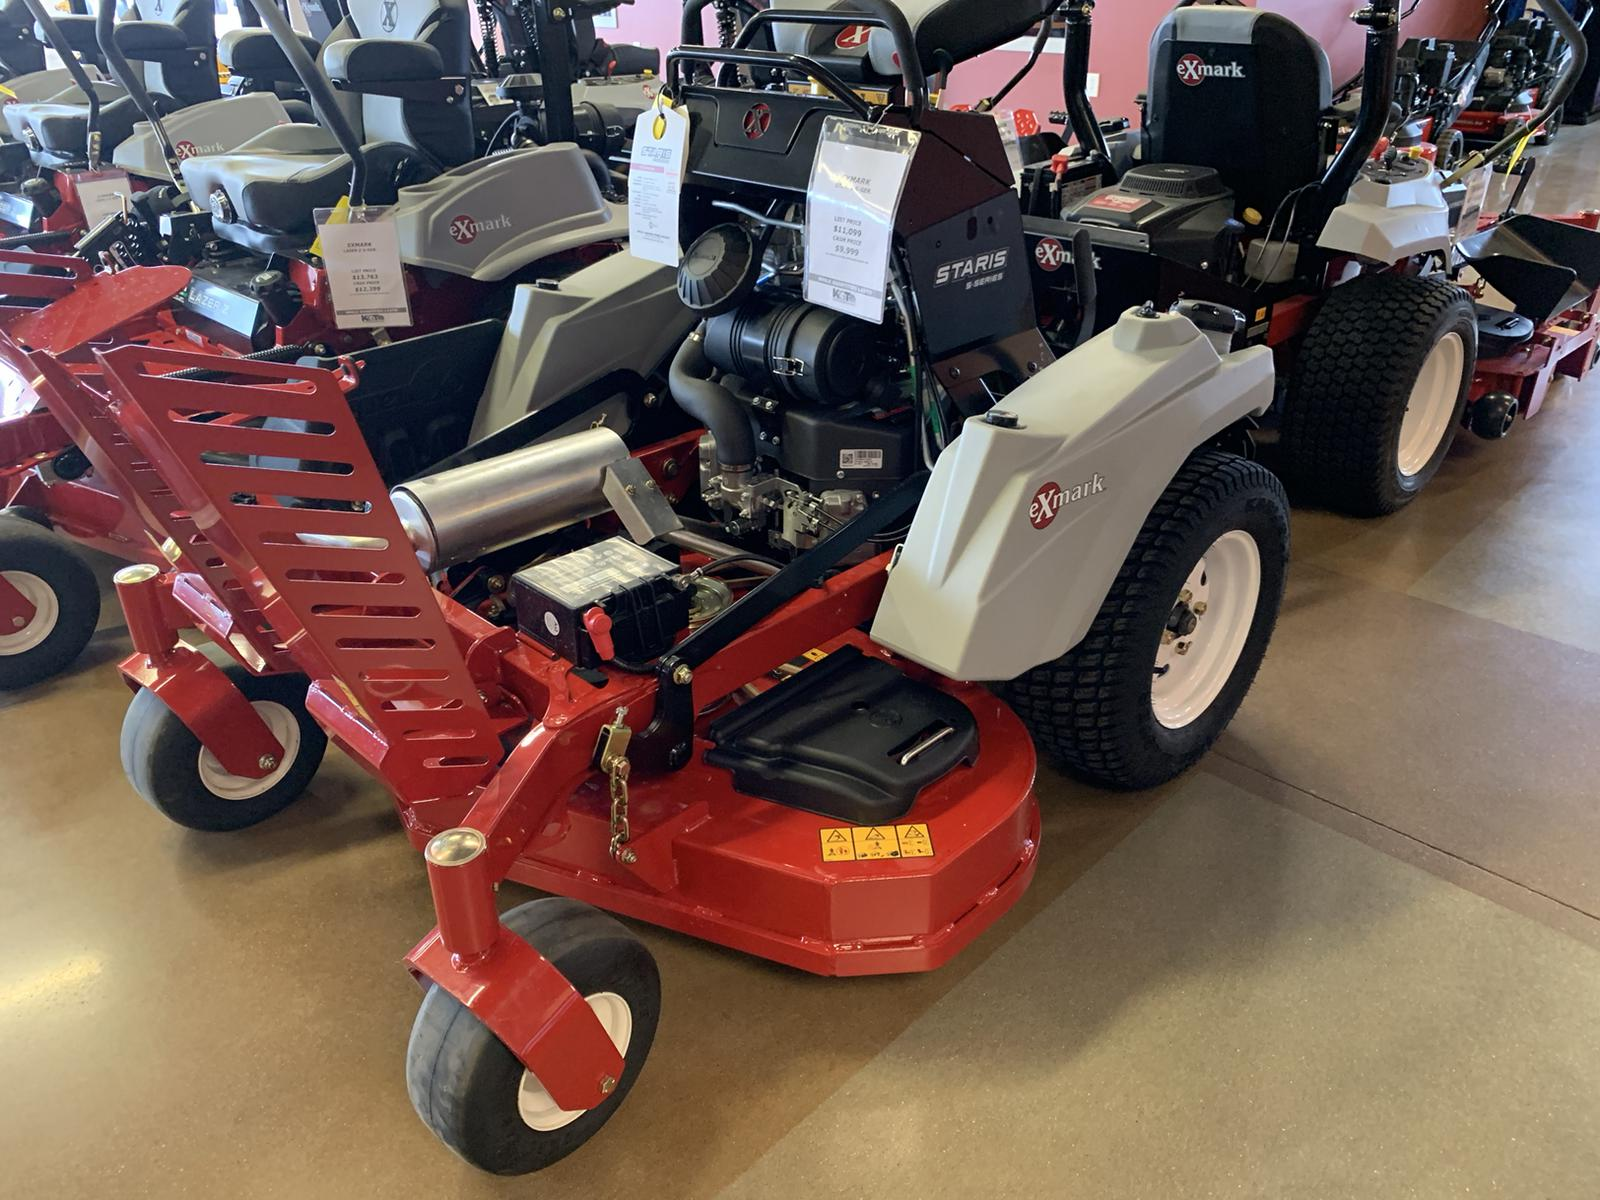 2019 Exmark STS730AKC52400 for sale in Wichita, KS  Kansas Golf and